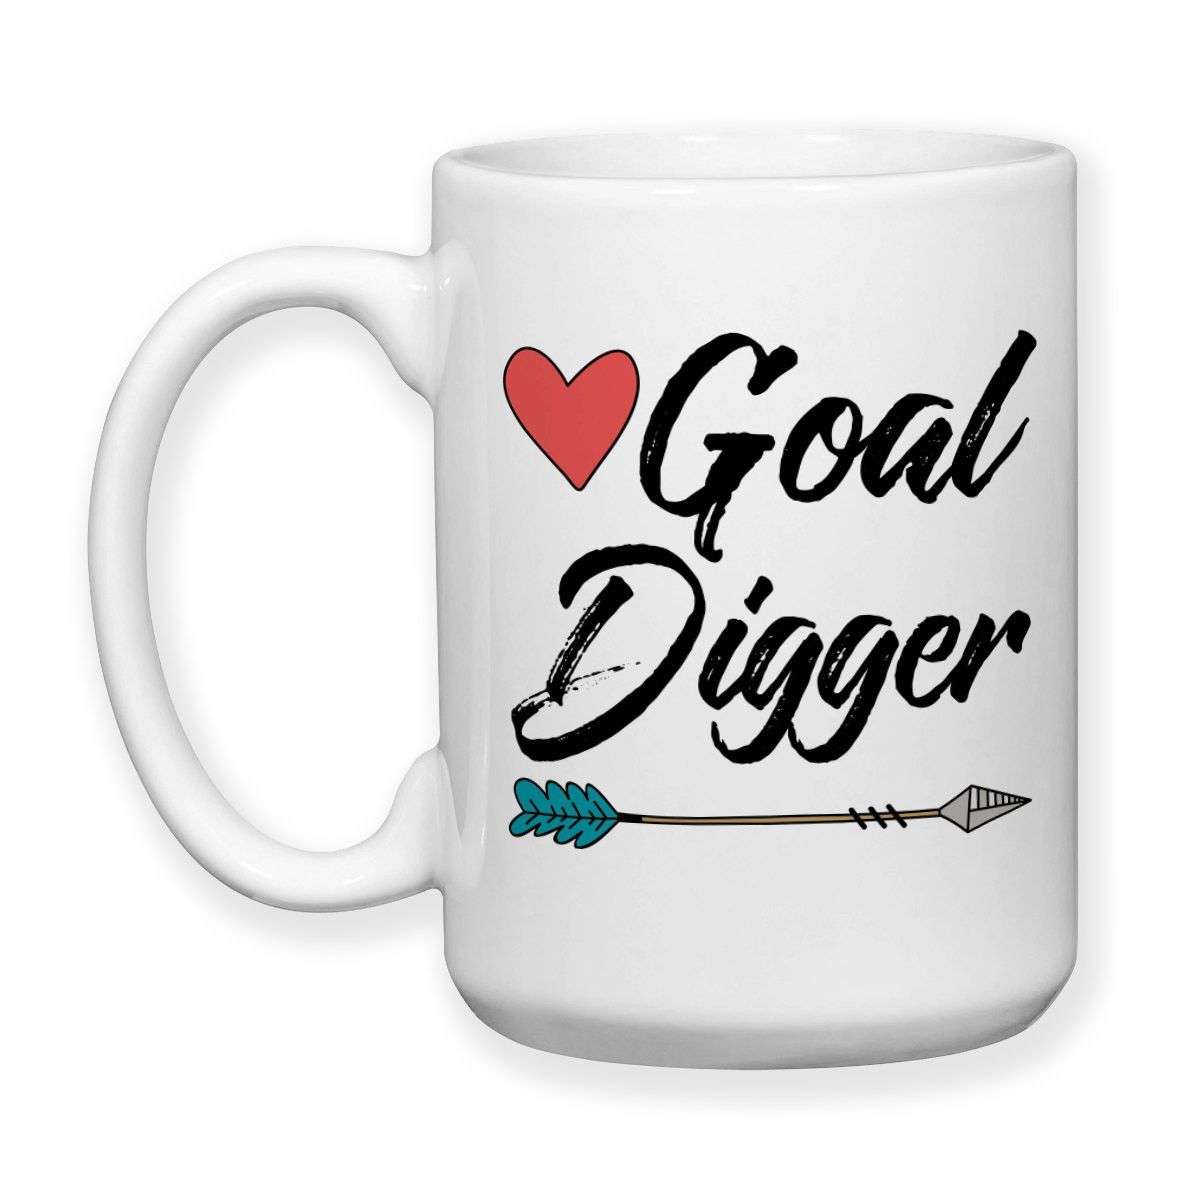 Coffee Mug, Goal Digger Hustling Work For Your Dreams Reaching Goals Boss Work Graduation Office, Gift Idea, Large Coffee Cup 15 oz